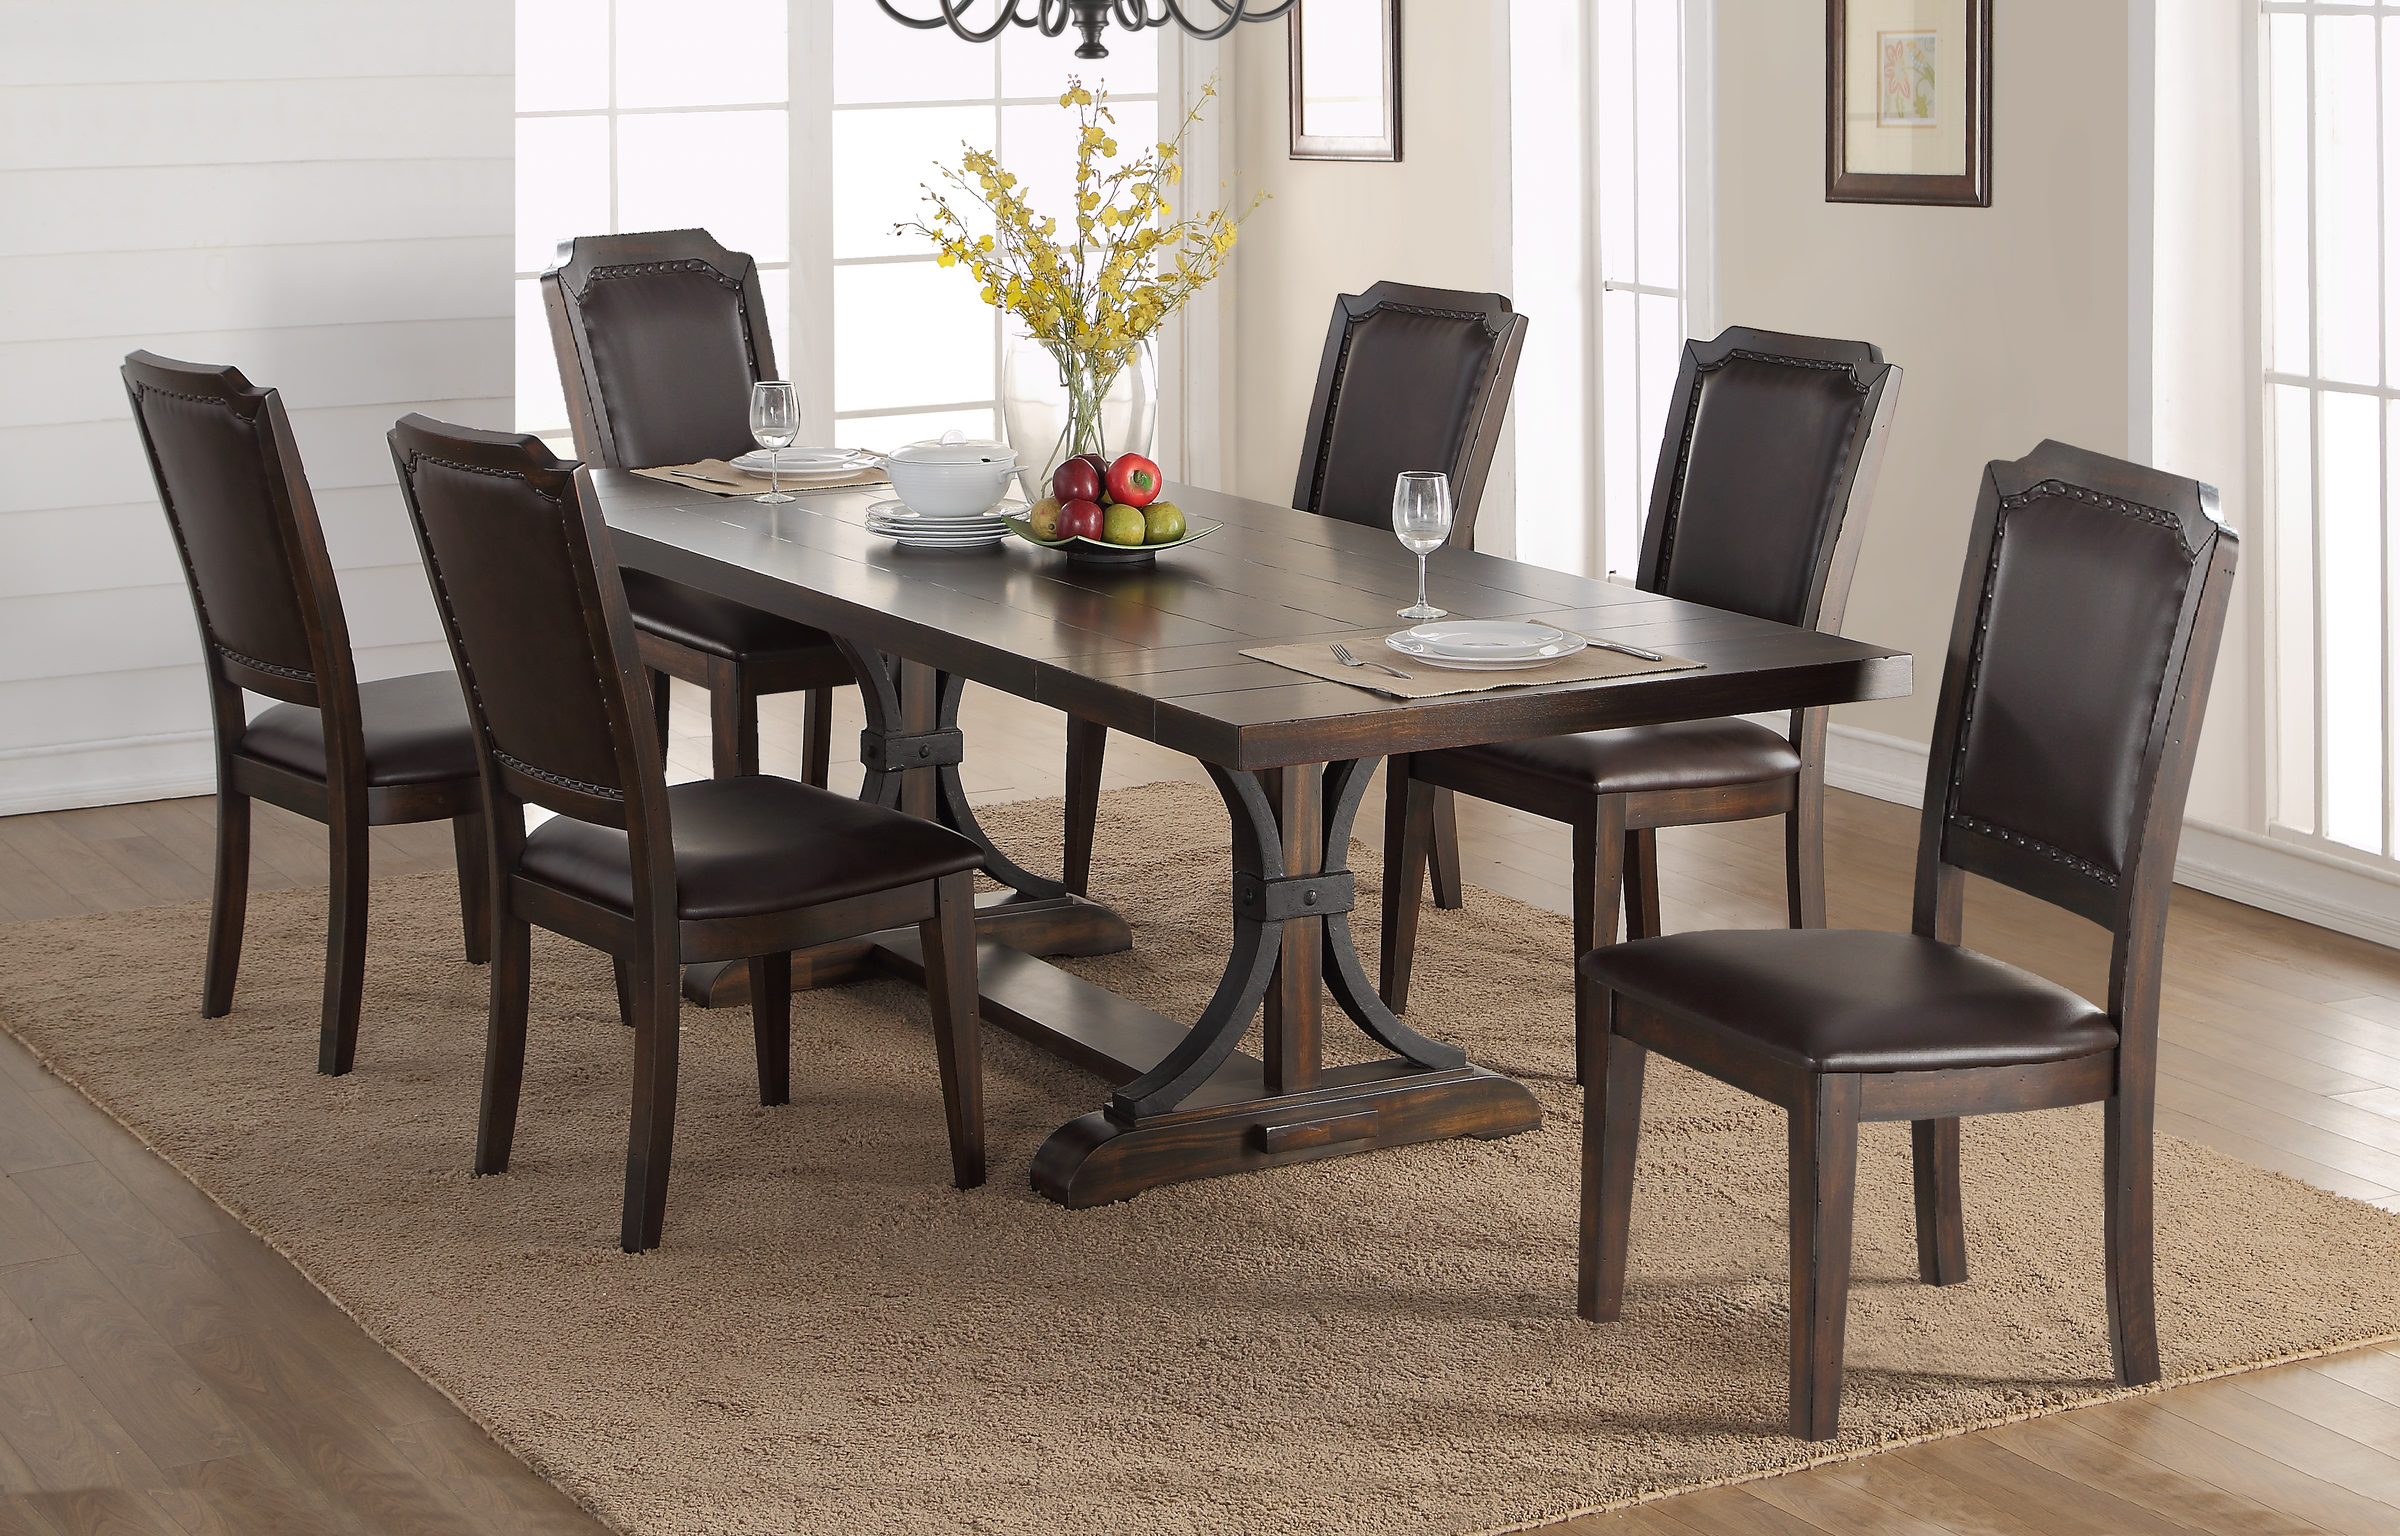 Marlinton 102 Table 6 Dining Chairs By Winners Only